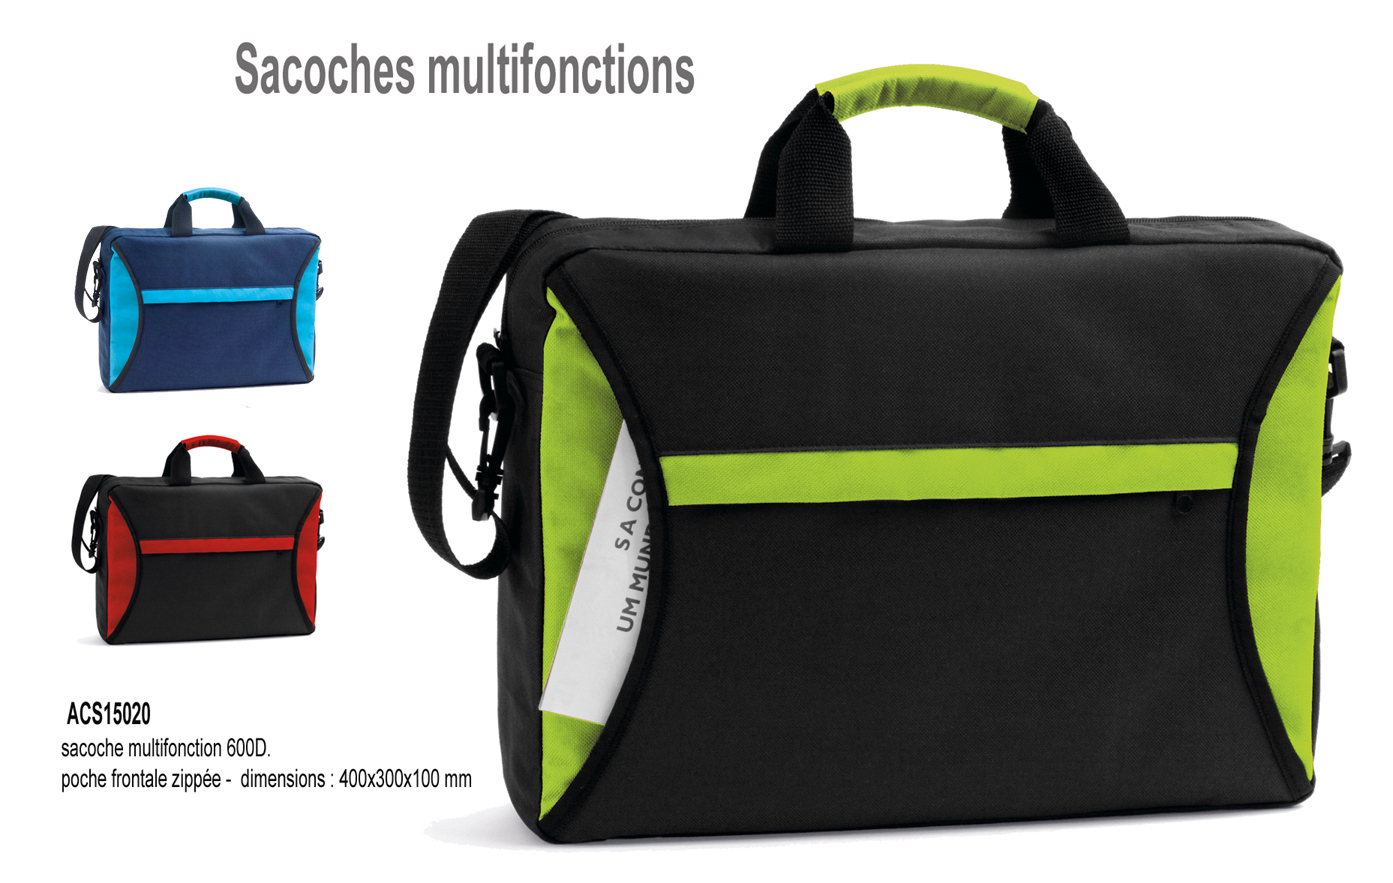 sacoche publicitaire multifonctions, sacoche porte-documents publicitaire, objets publicitaires, cadeaux, salon, meeting,  promotions